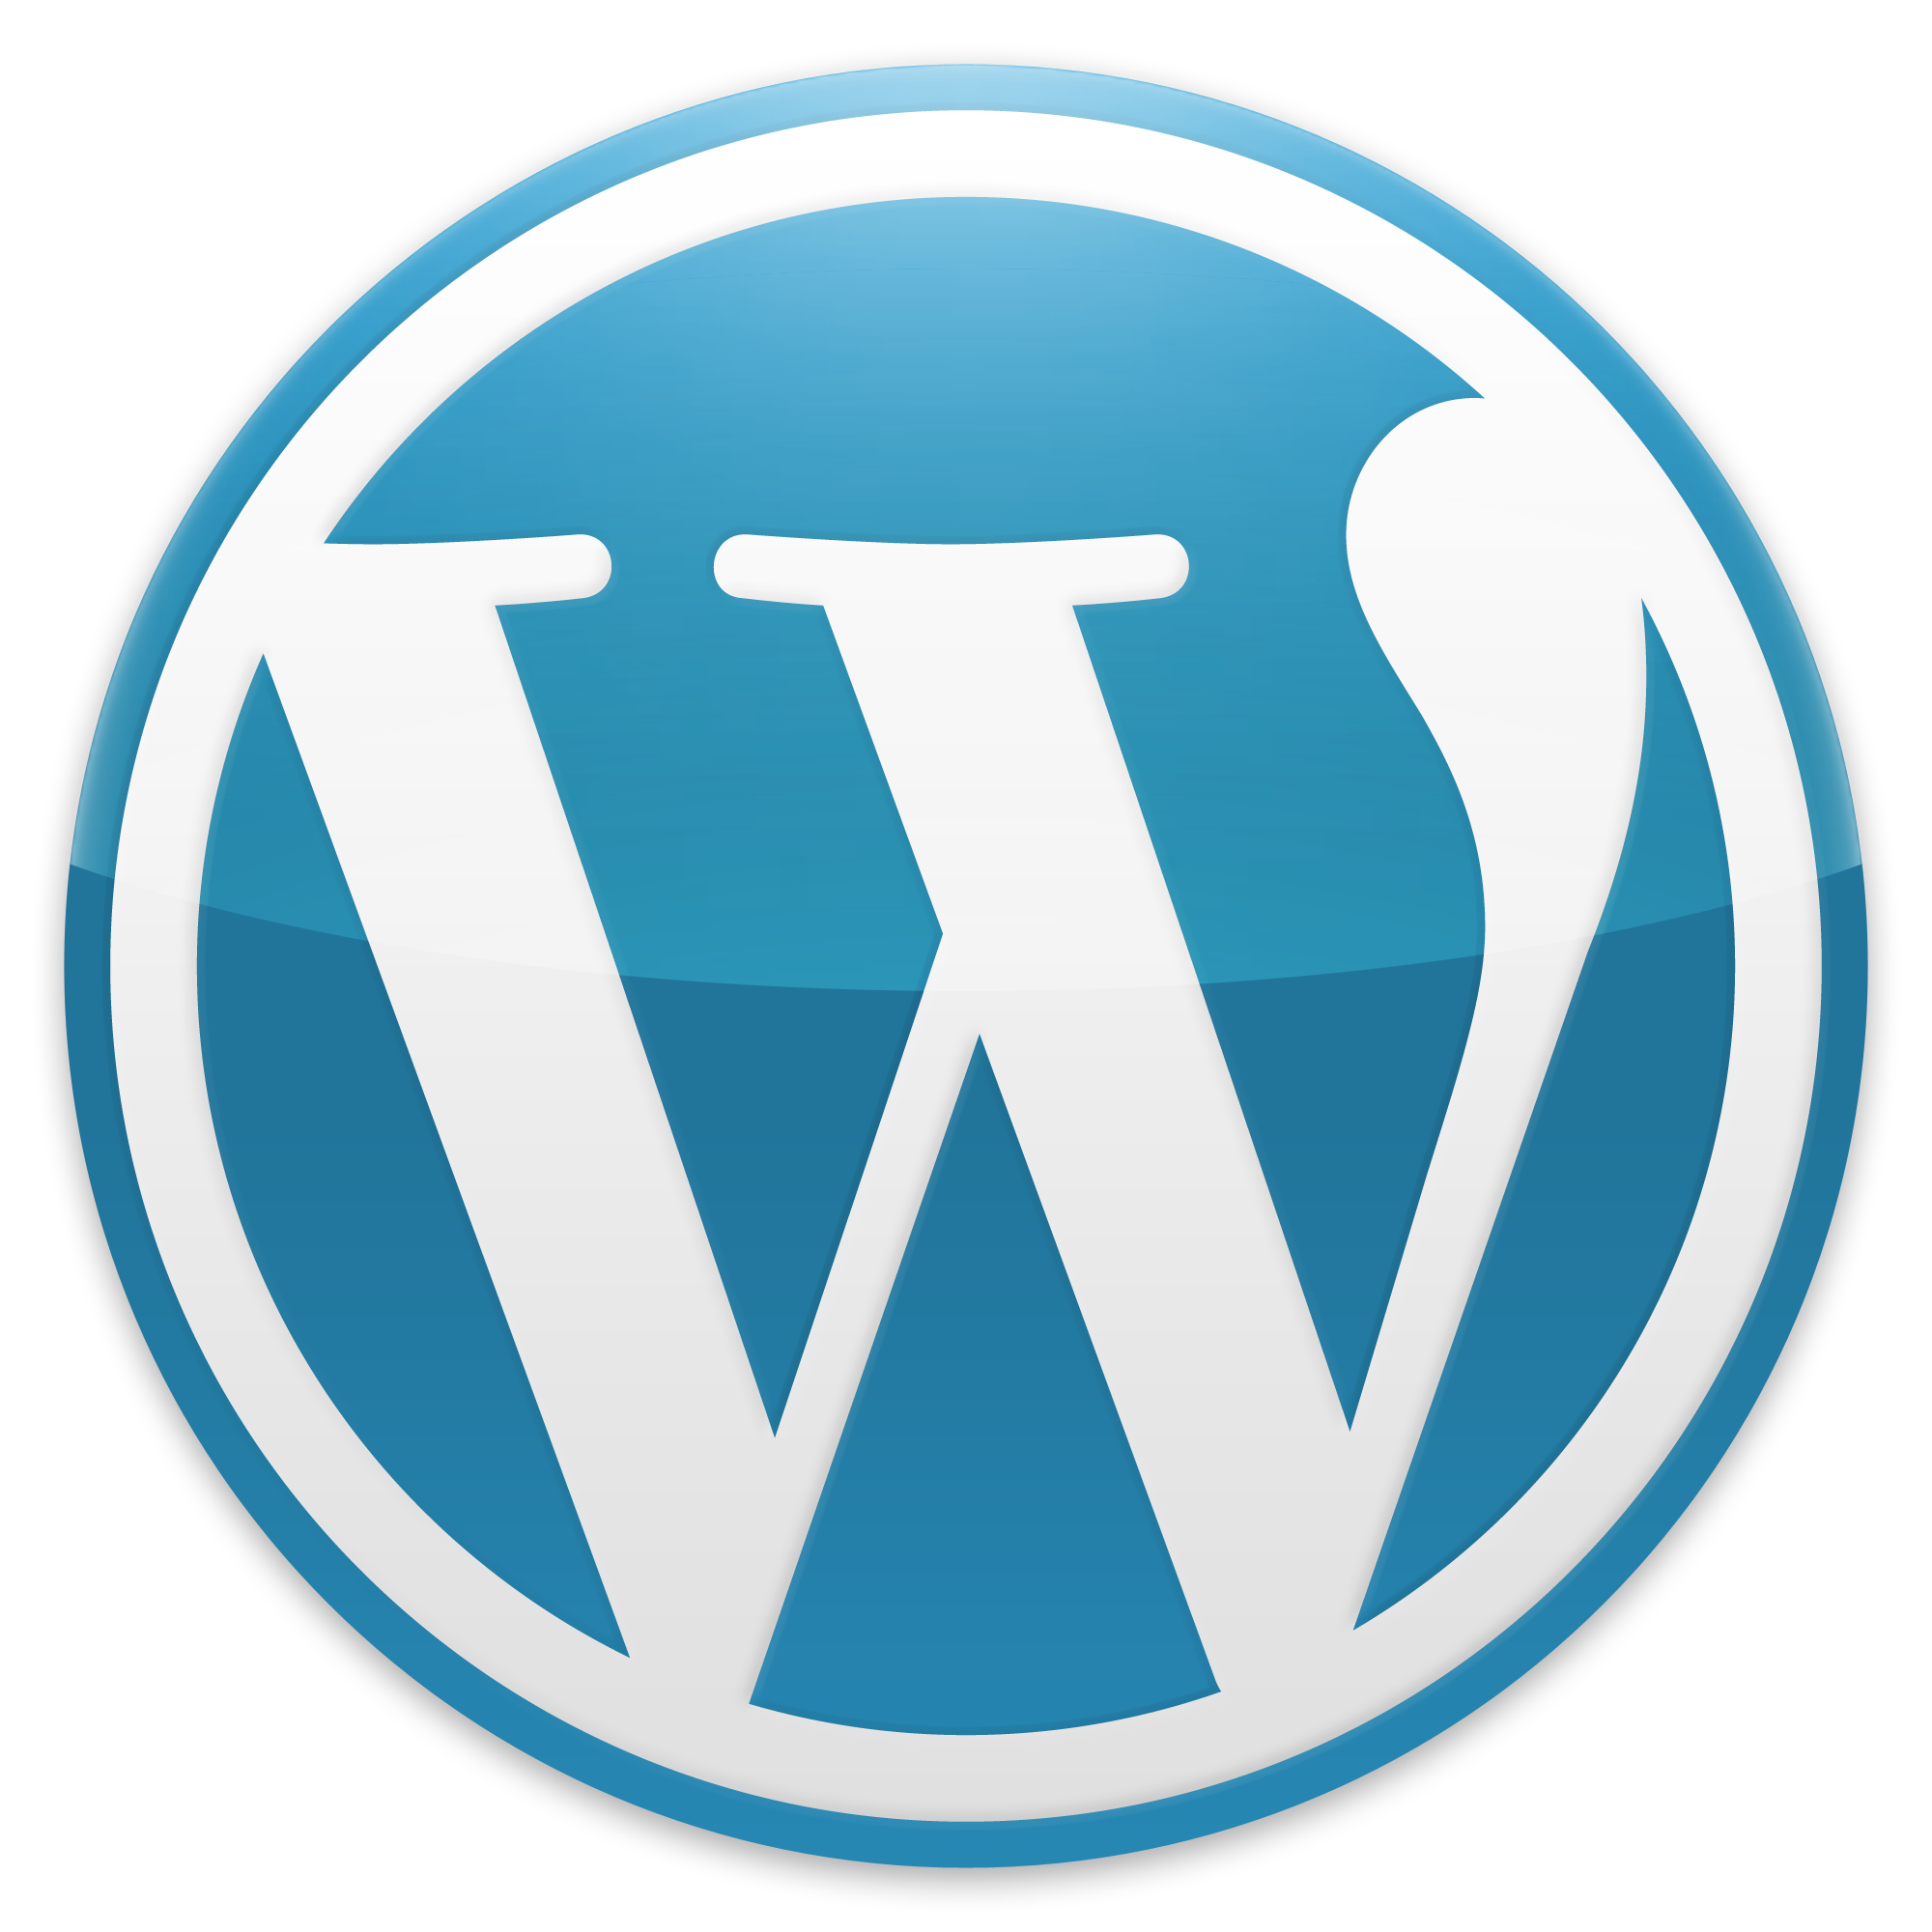 File:Wordpress Blue logo.png - Wordpress Logo PNG